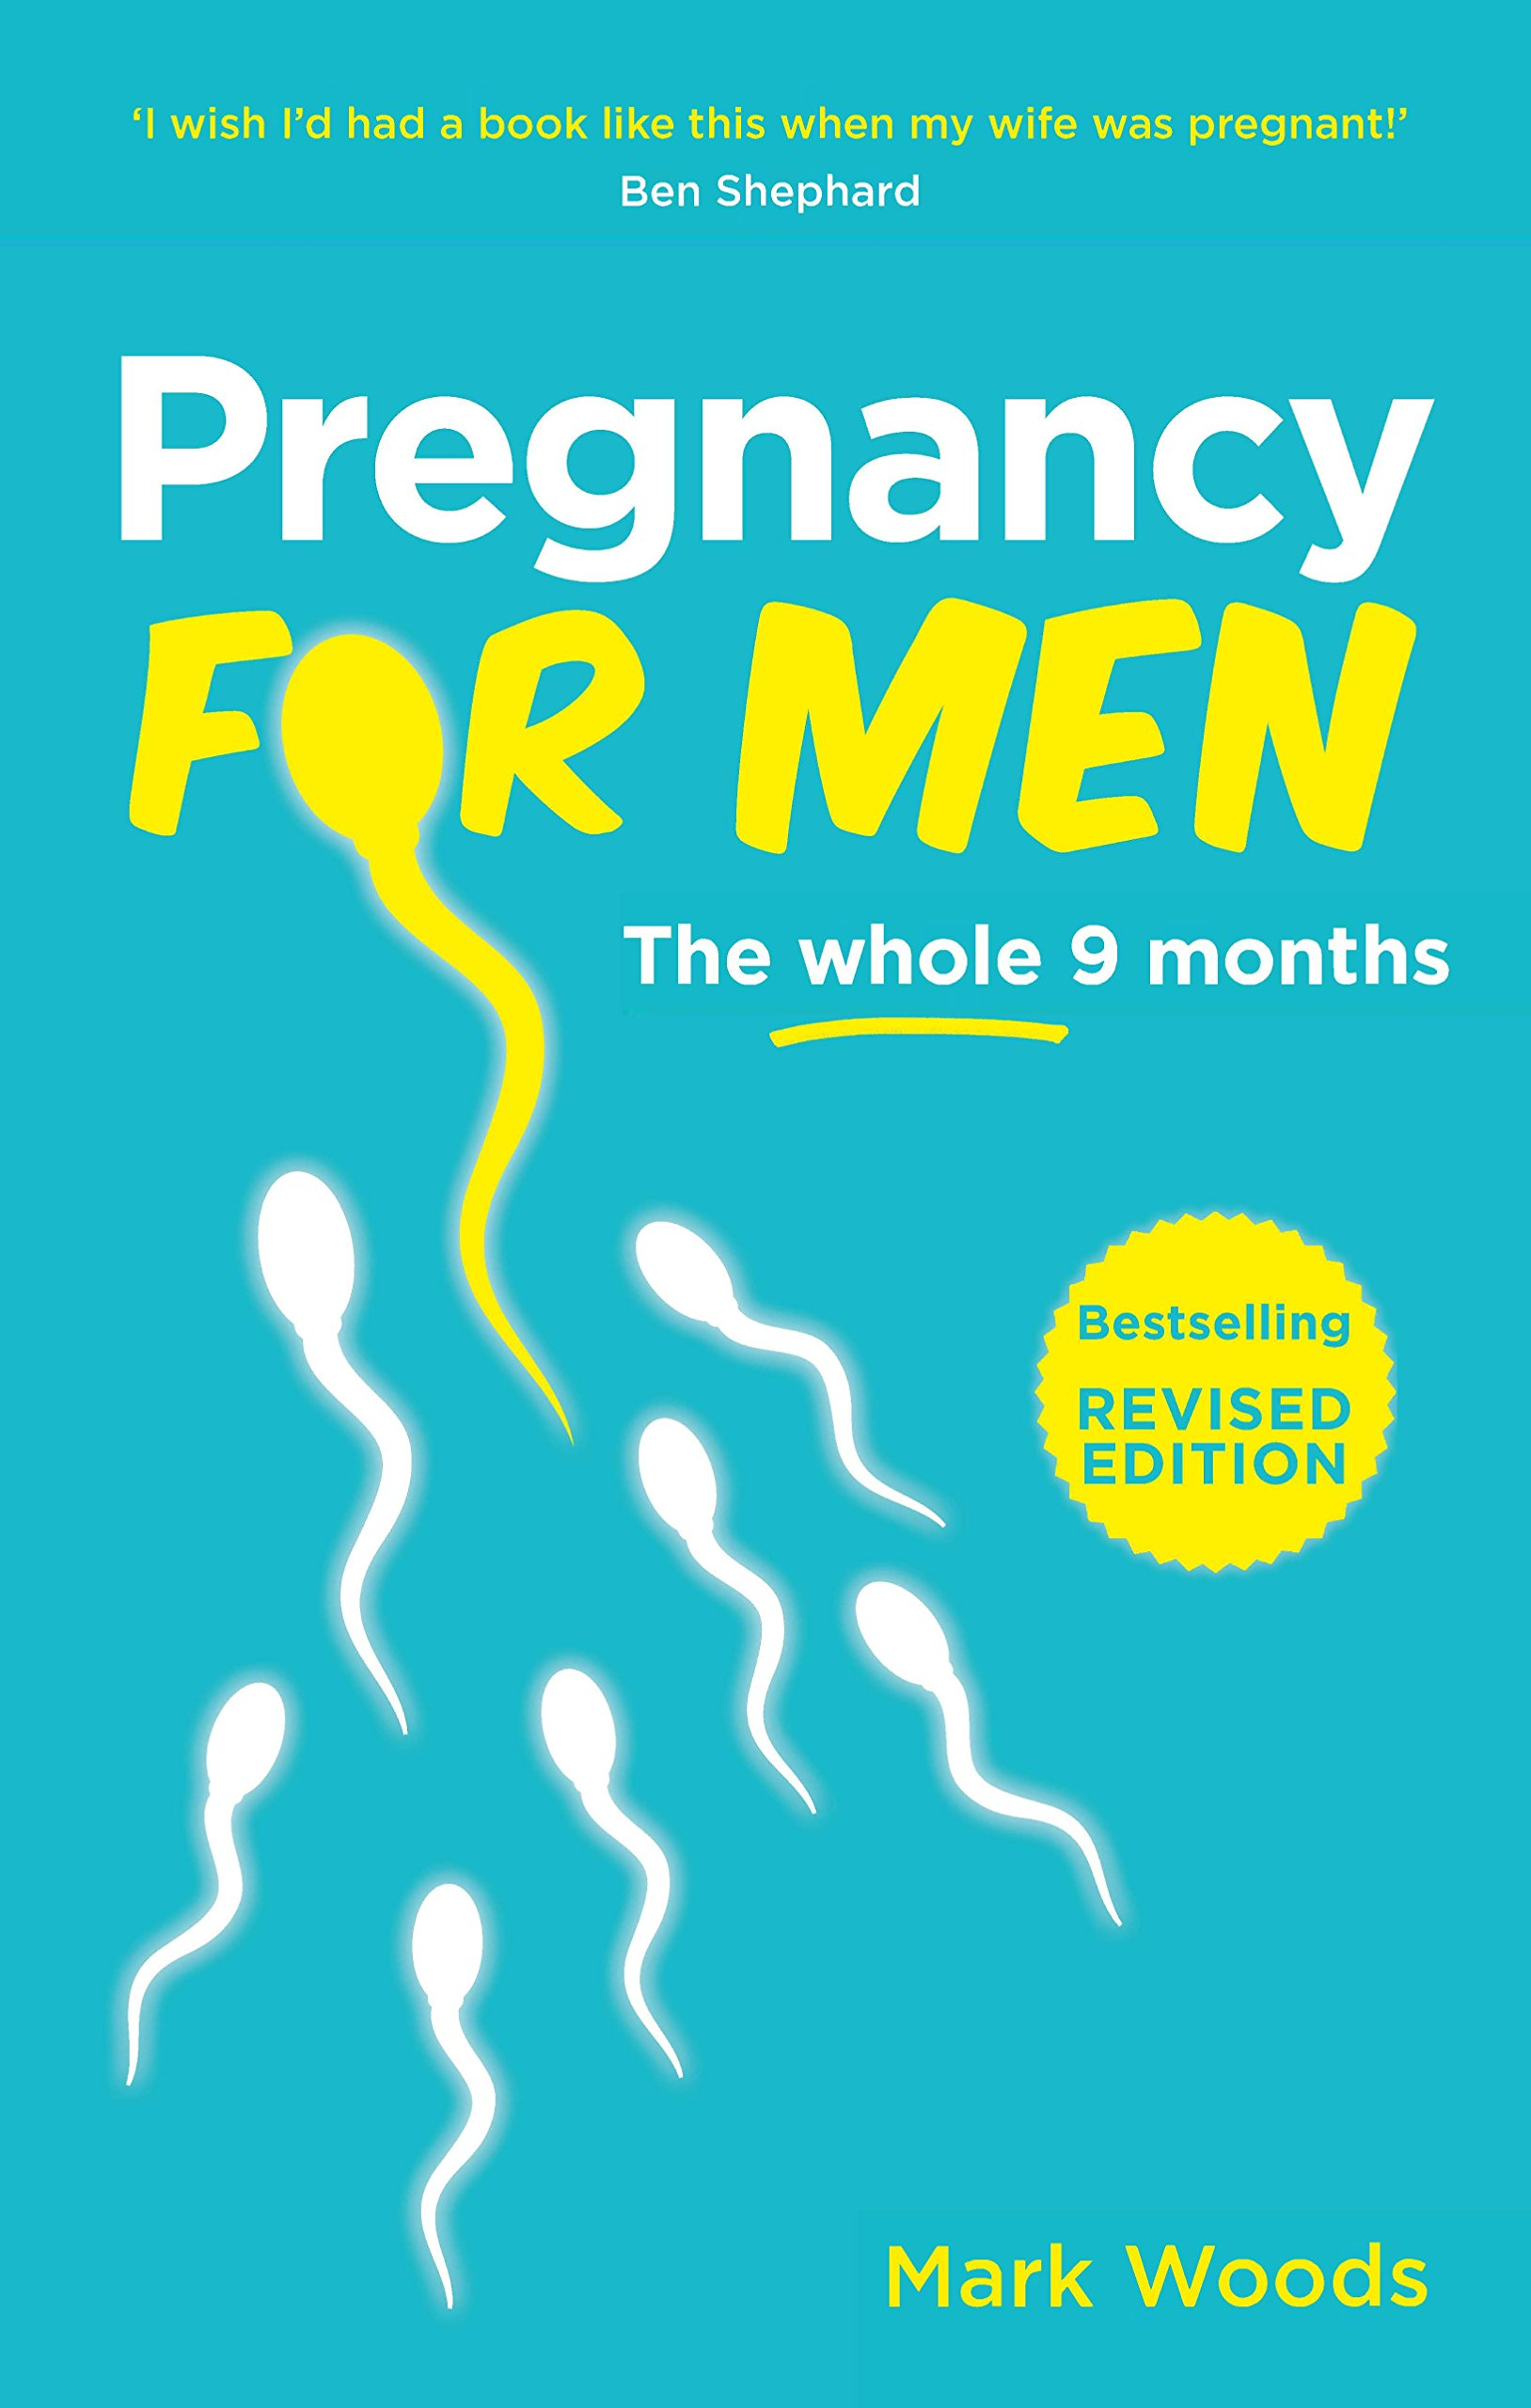 Modern pregnancy: a plan of action for 9 months